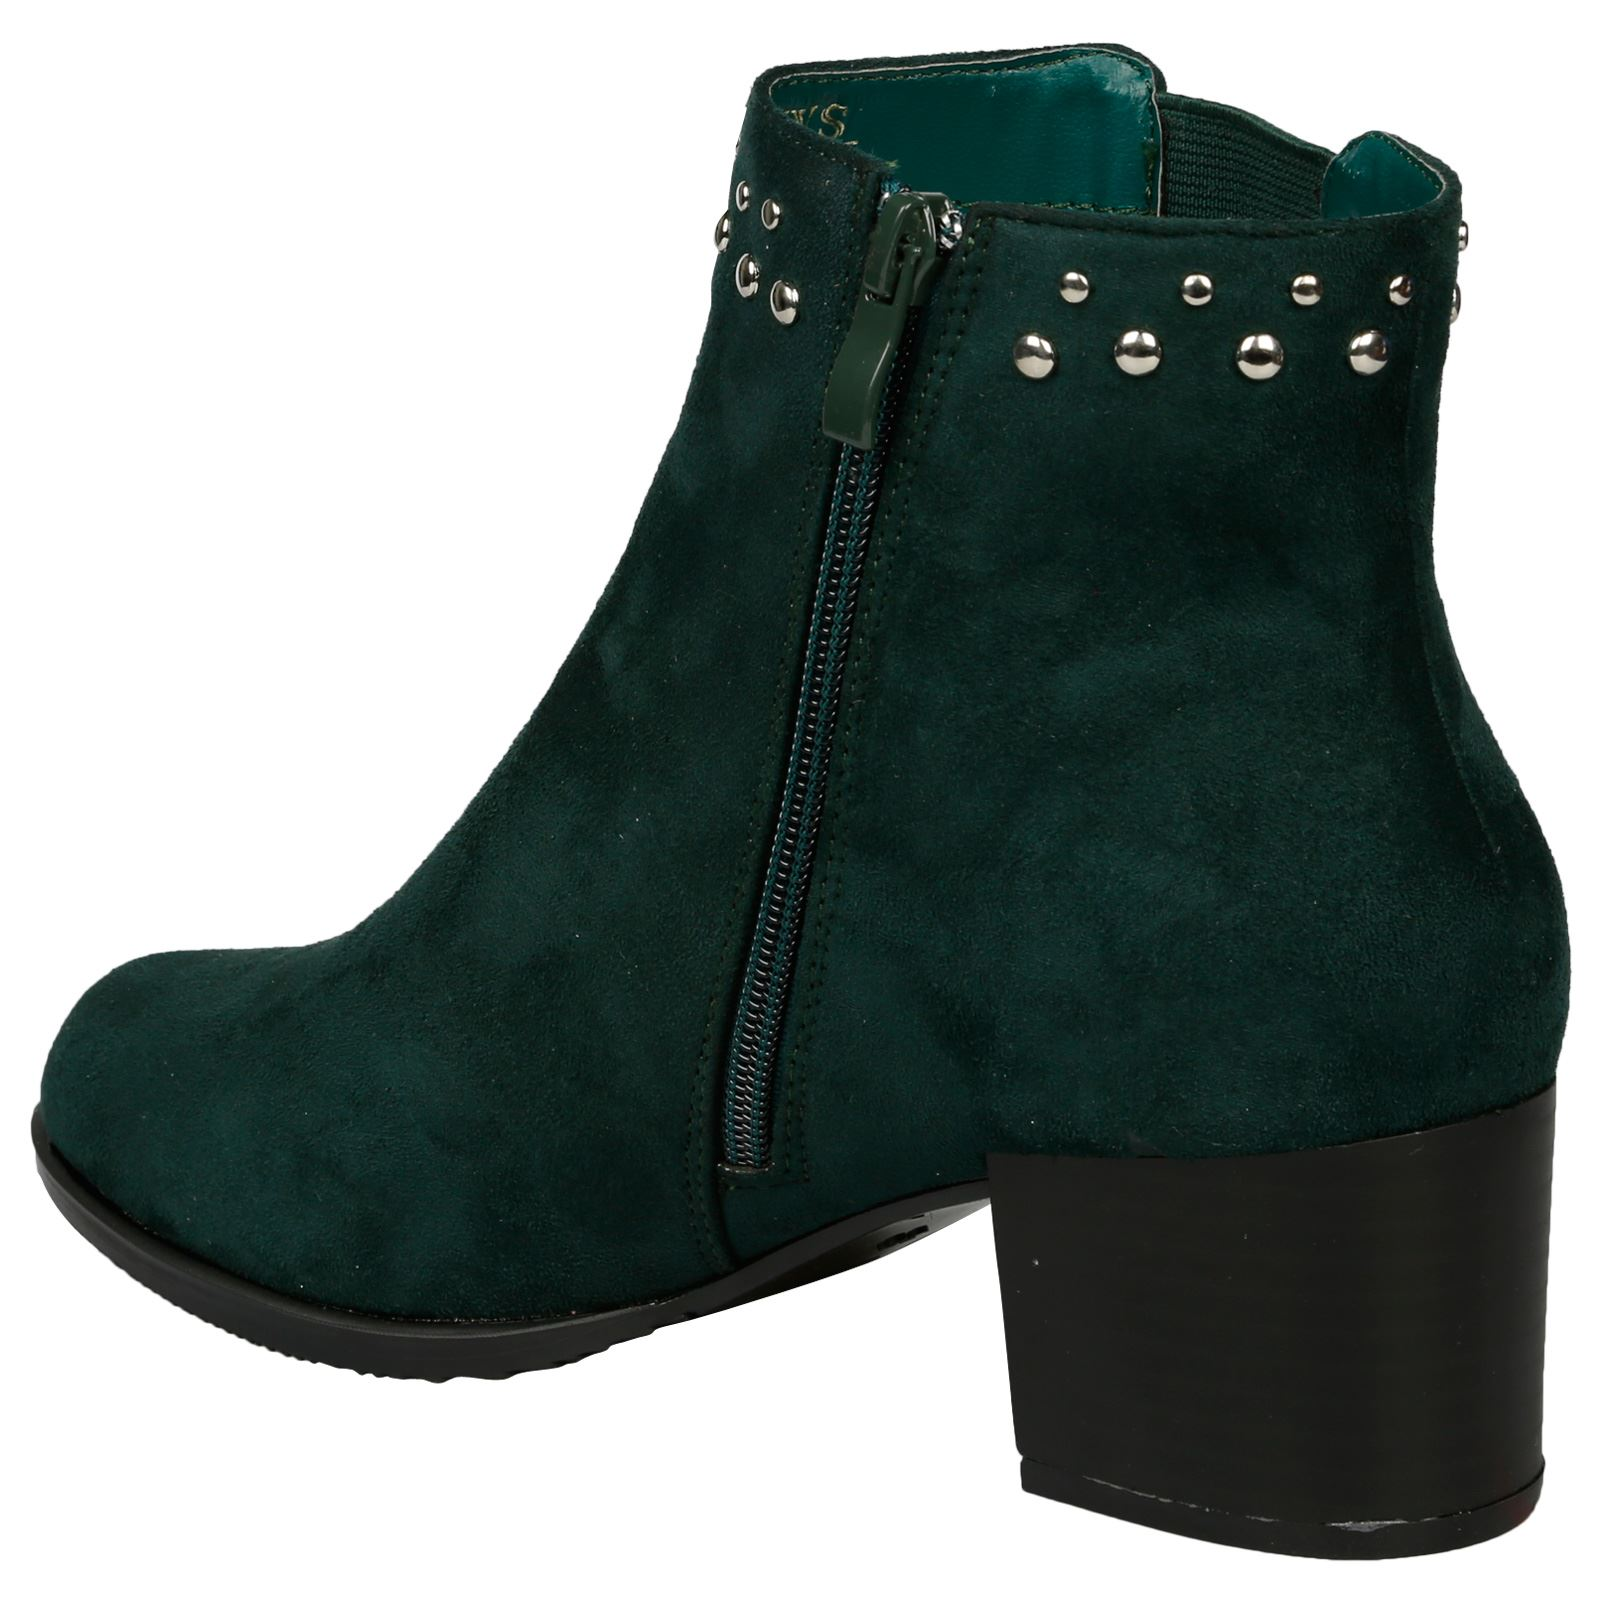 Luna-Womens-Low-Mid-Block-Heel-Studded-Chelsea-Zip-Up-Ankle-Boots-Casual-Ladies thumbnail 13